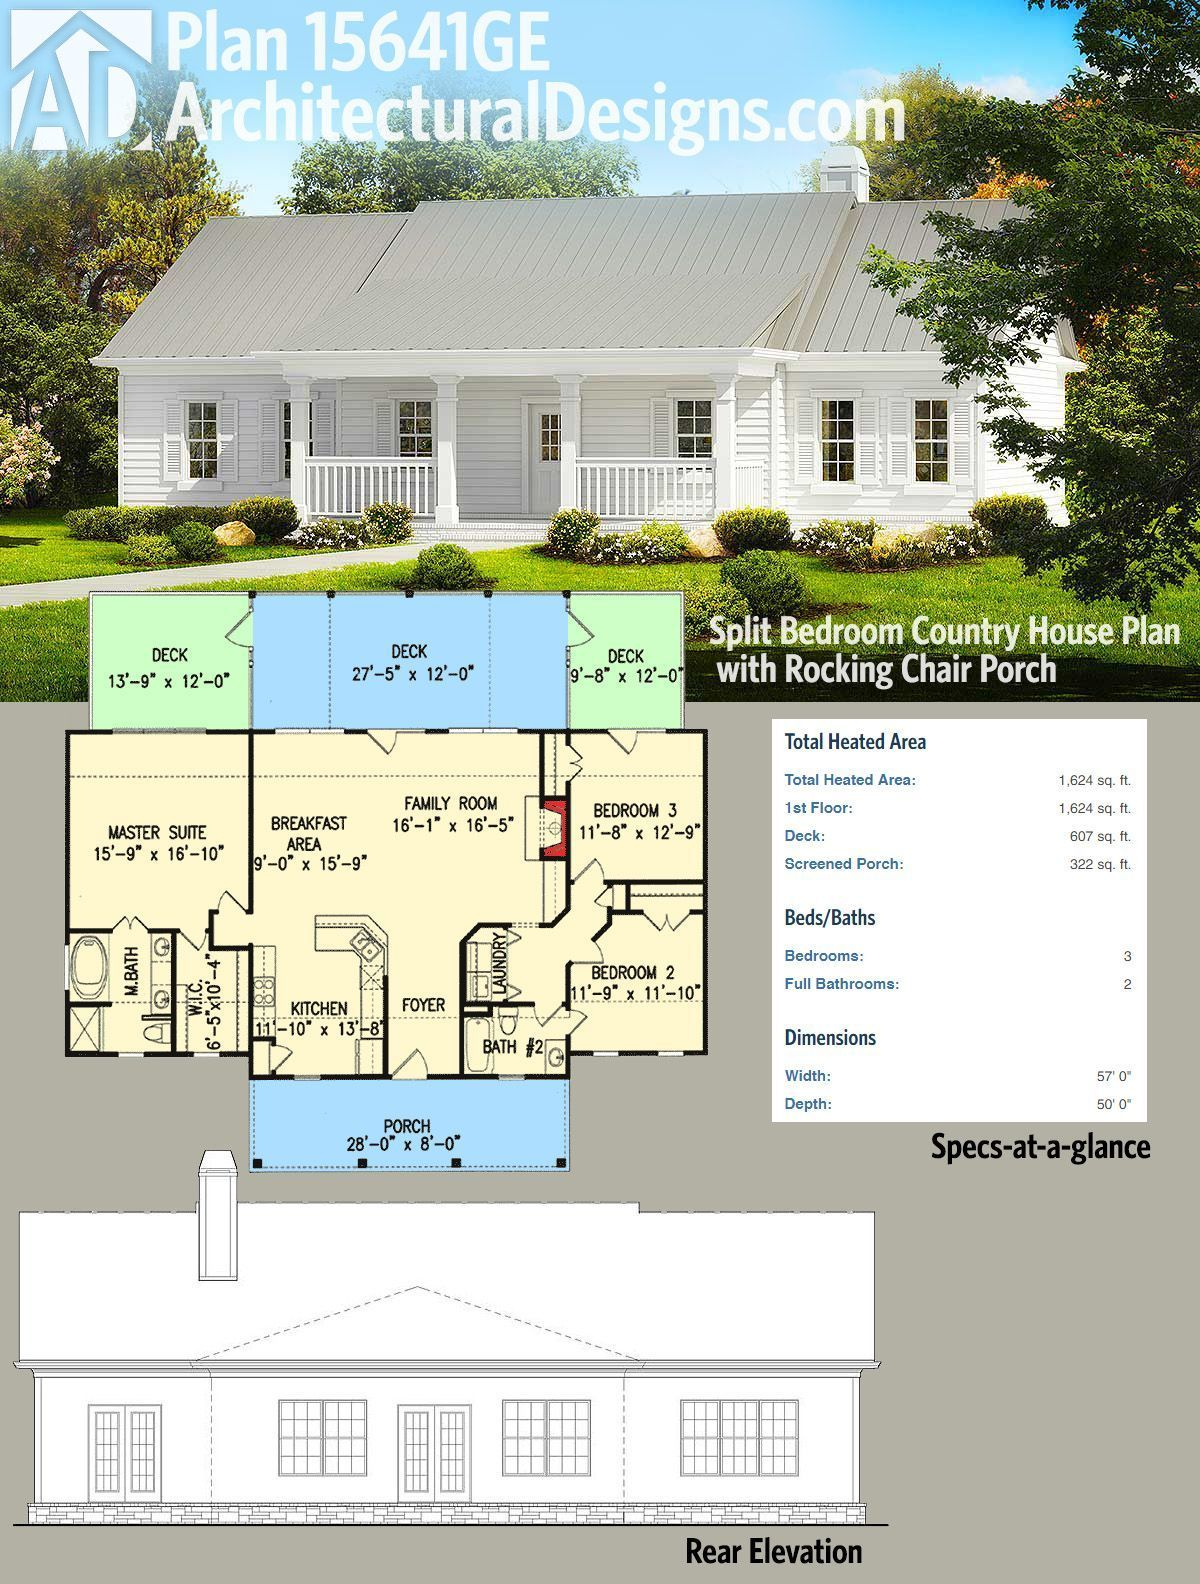 Architectural Designs Country House Plan 15641GE gives